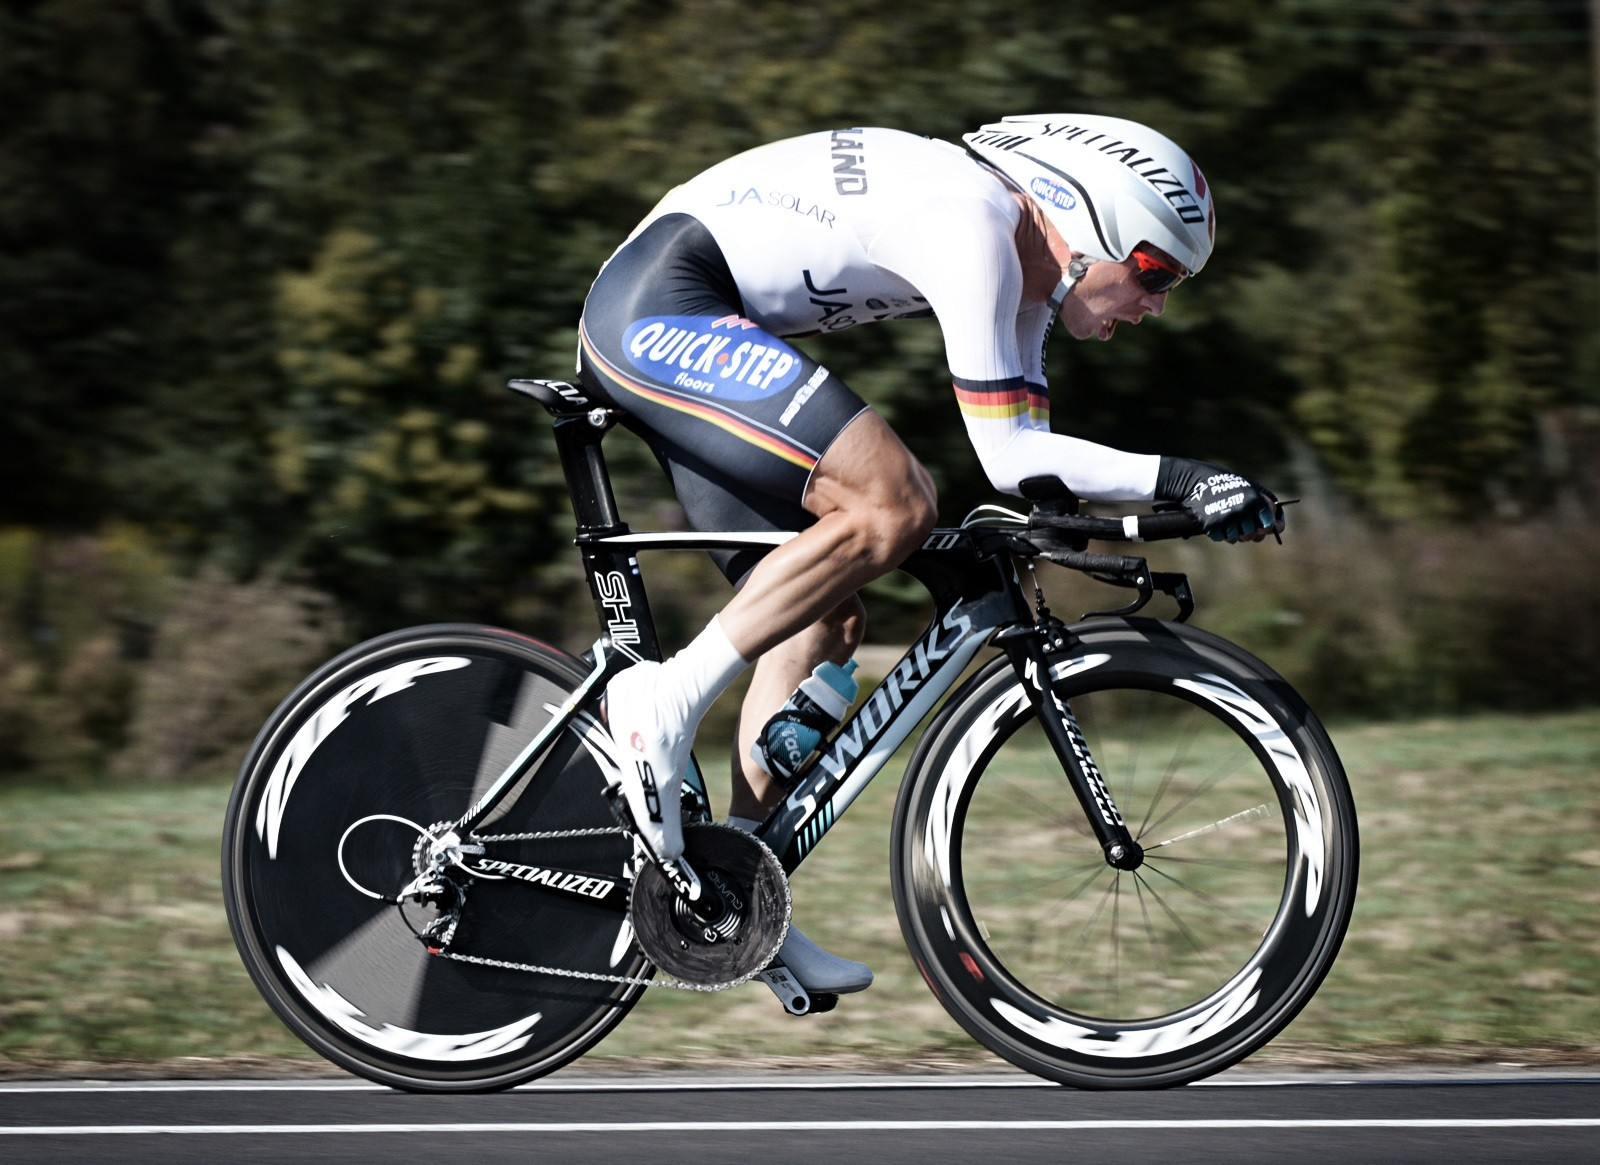 Tony Martin (Germany) piloted his Specialized Shiv to victory today with a  58T chainring-